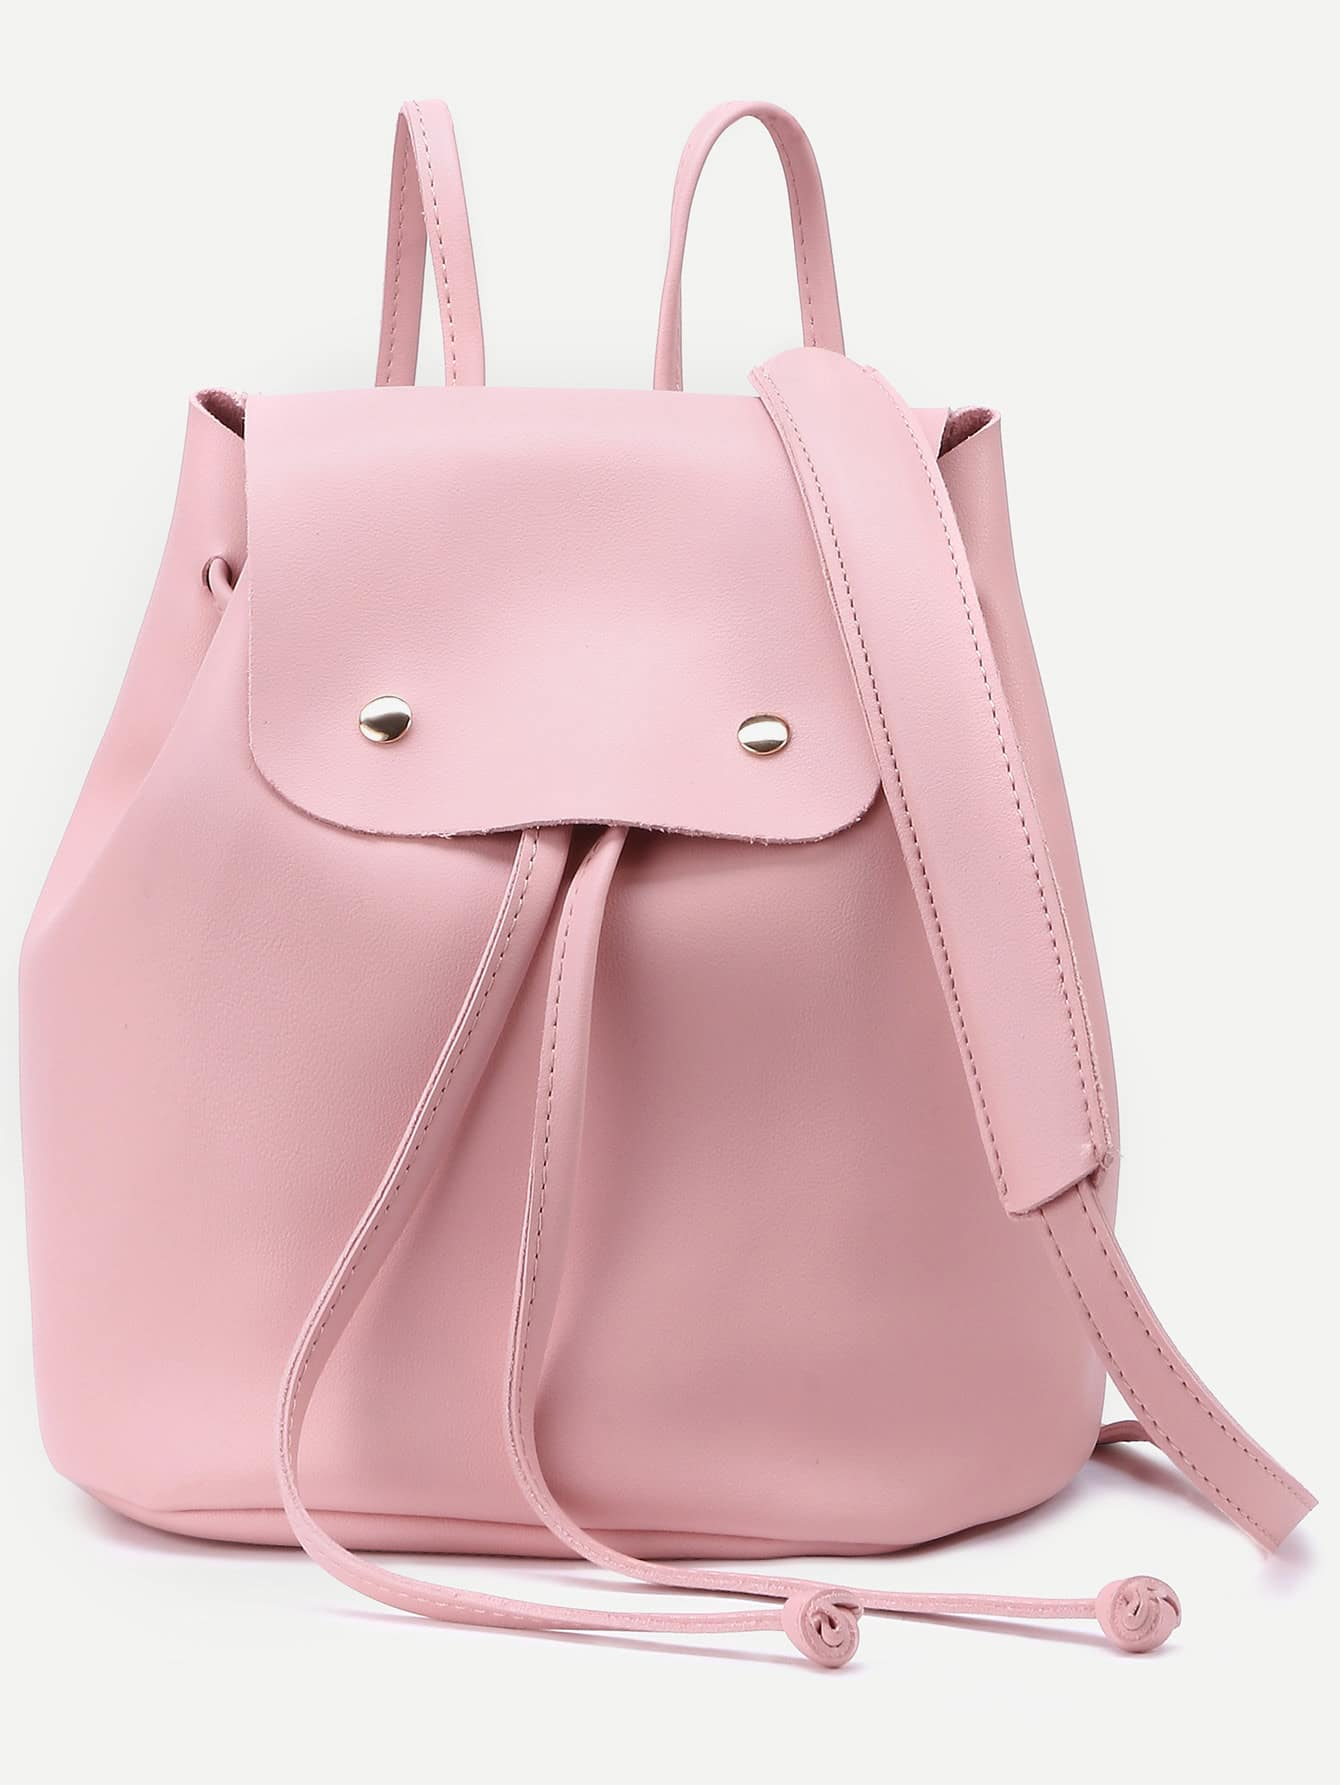 Pink Faux Leather Drawstring Flap Backpack With Clutchfor